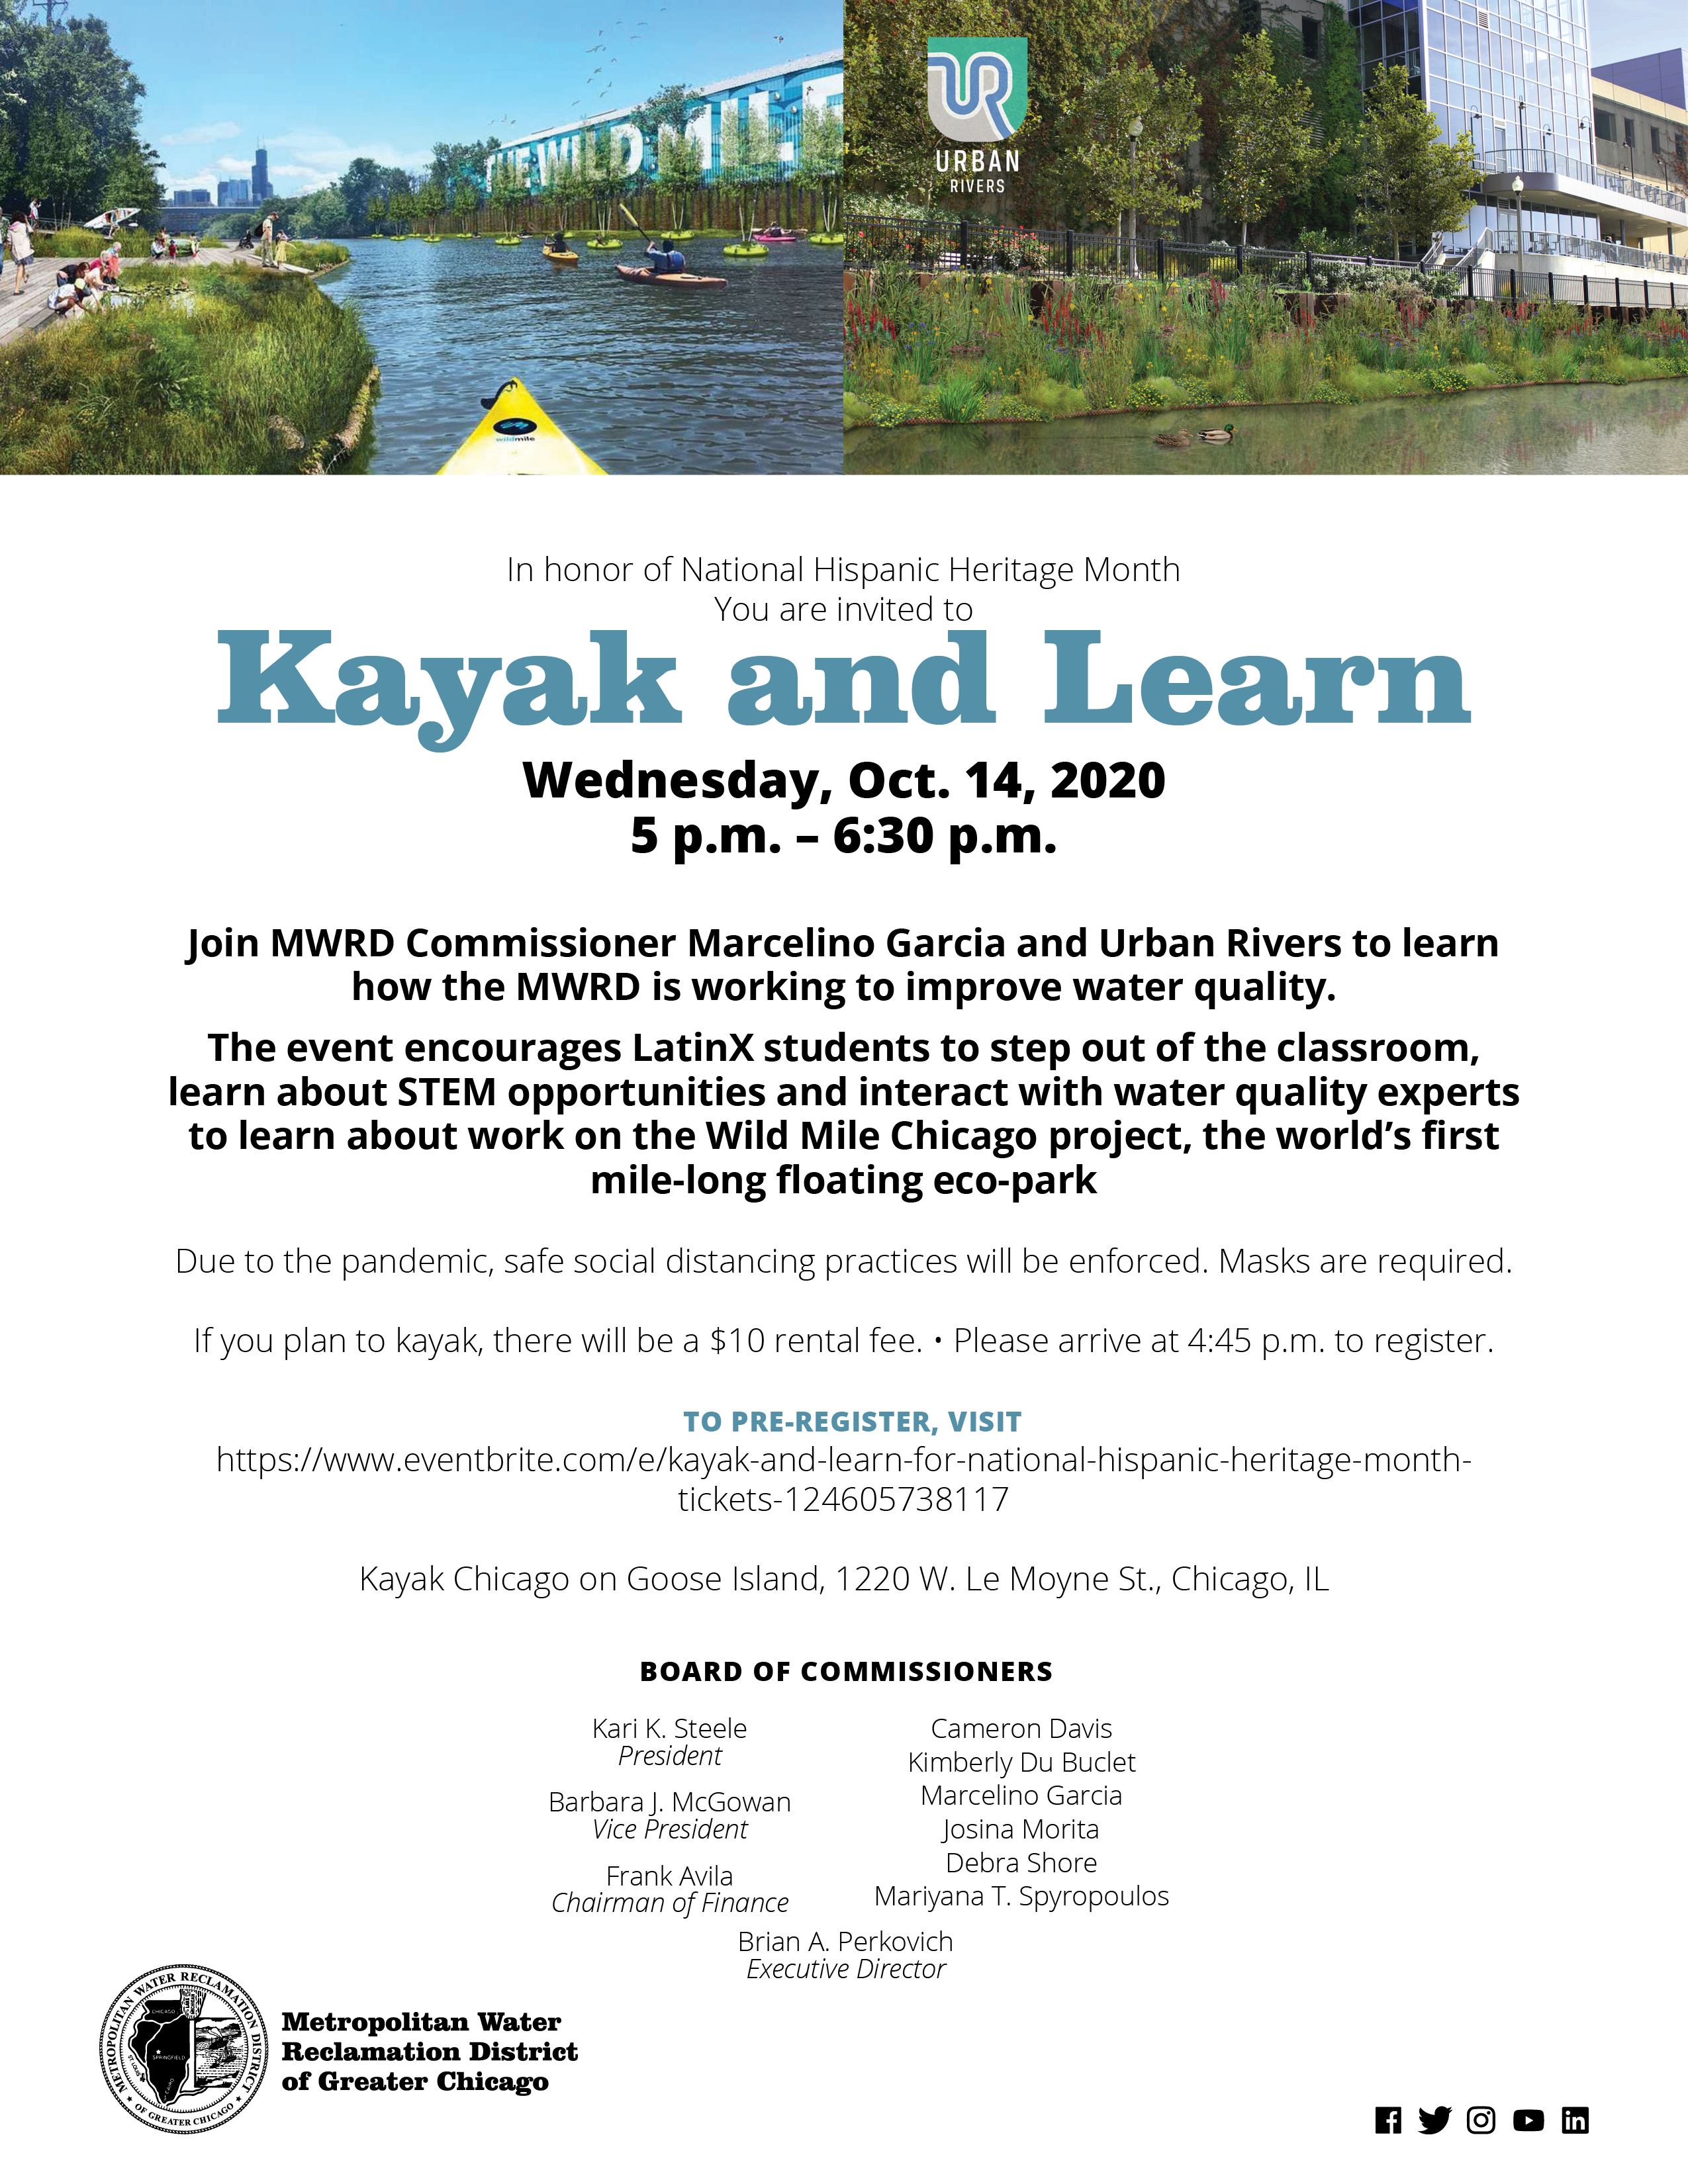 Kayak and Learn Invite